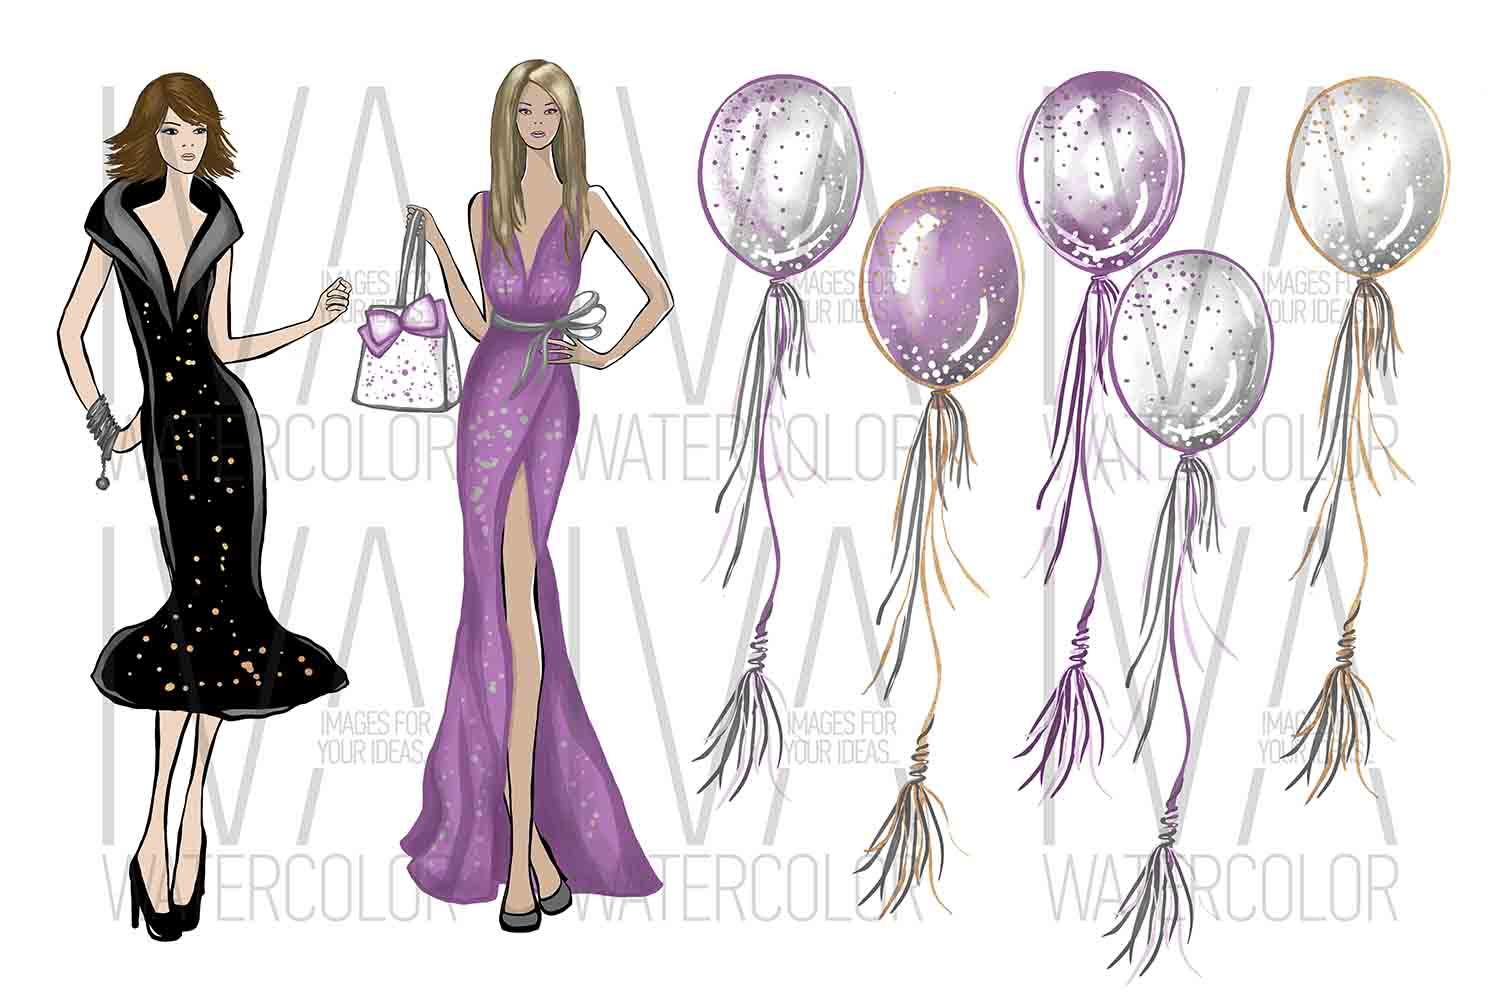 New Year's Eve Clipart, Fashion Illustration example image 4